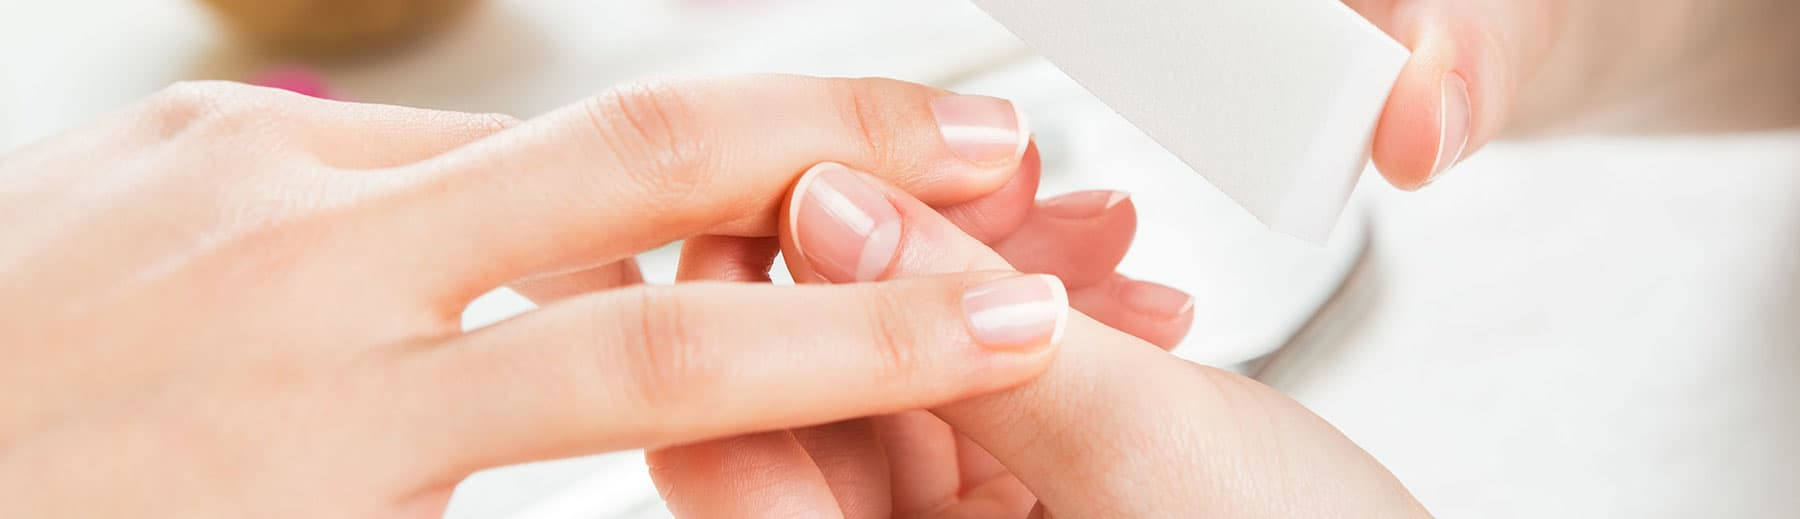 Gel Nails Workshop In Toronto Esthetician Training Class